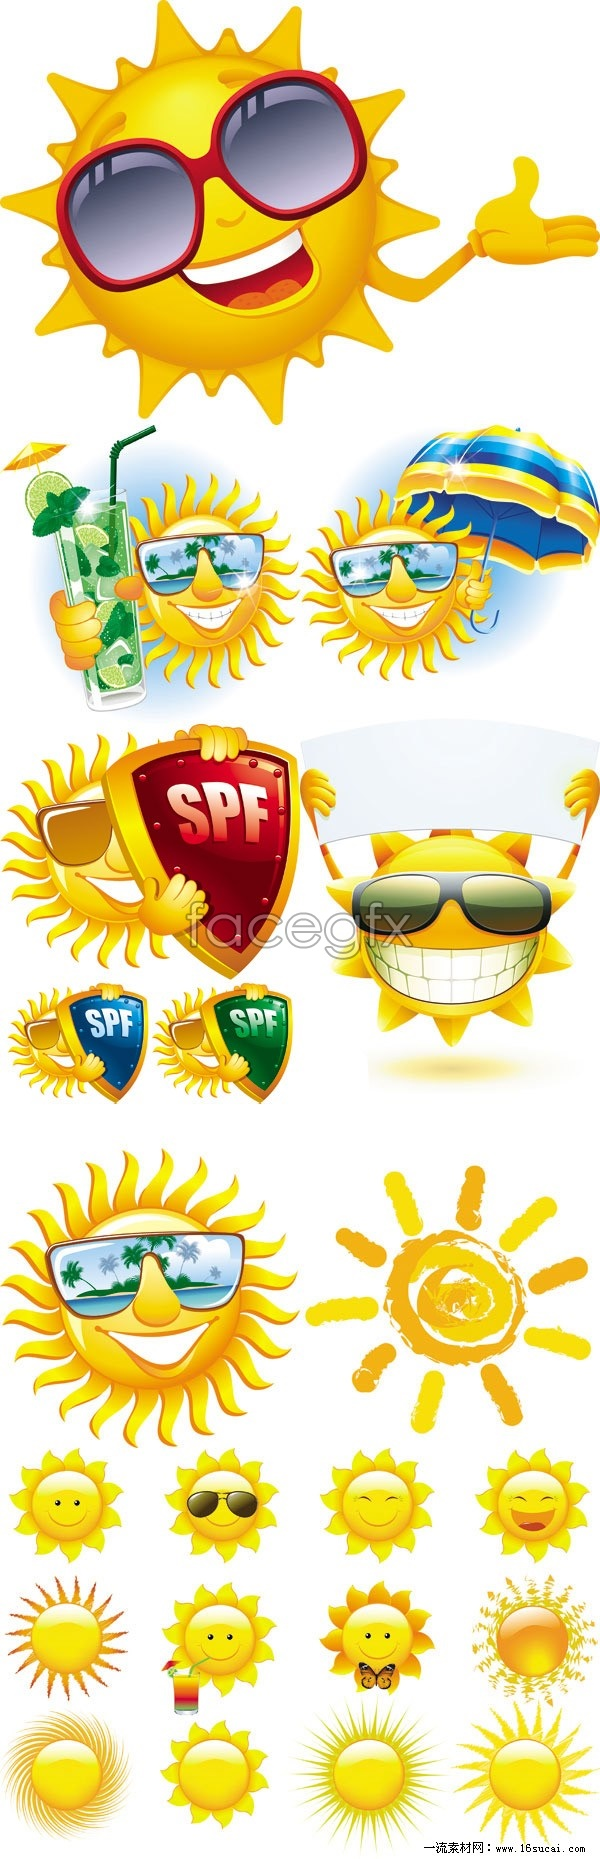 Cartoon Images Of The Sun Vector Art Pack Over Millions